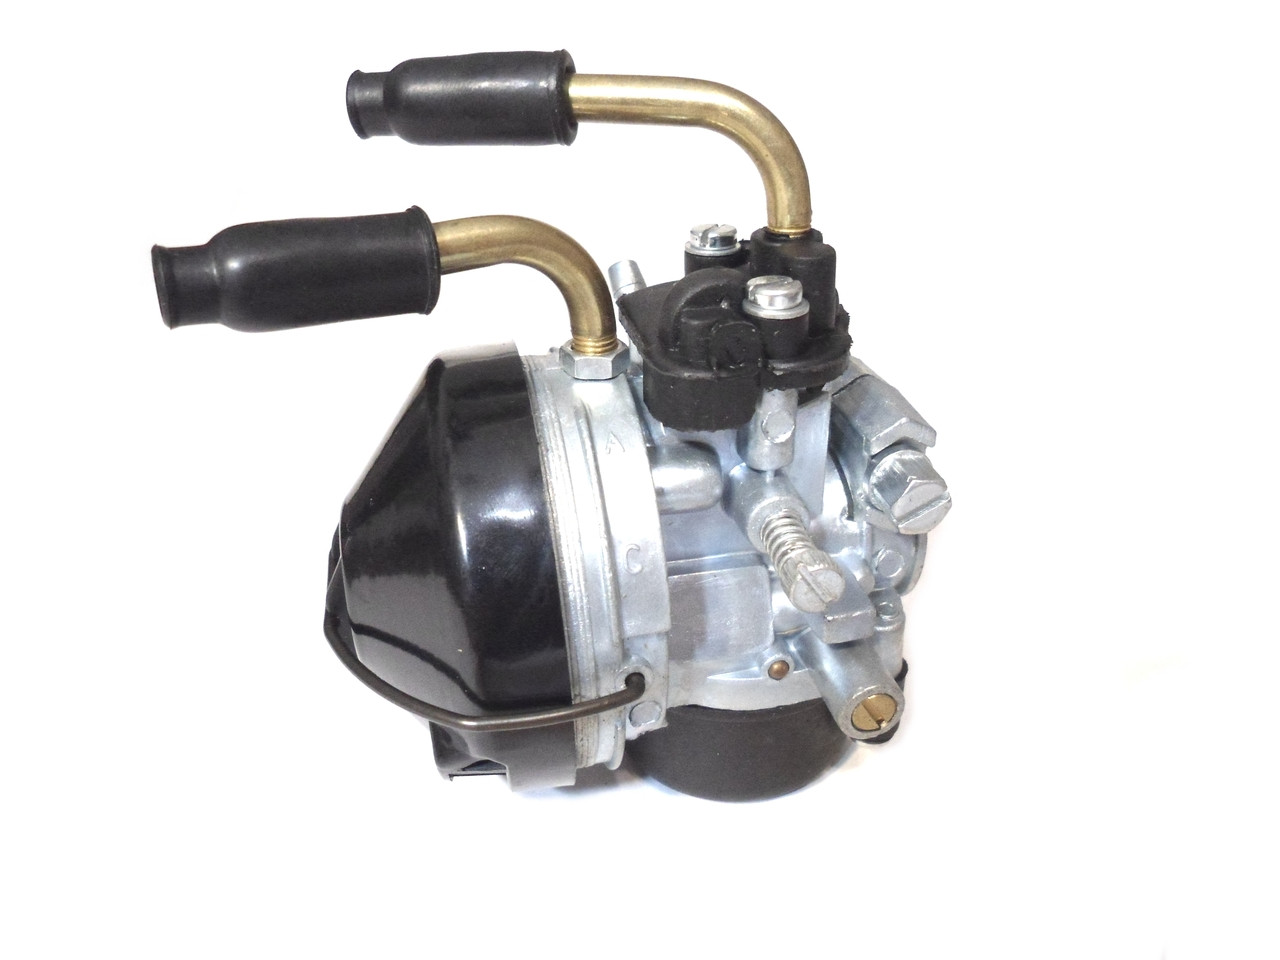 Dellorto Clone 15mm SHA Carburetor, Cable Choke